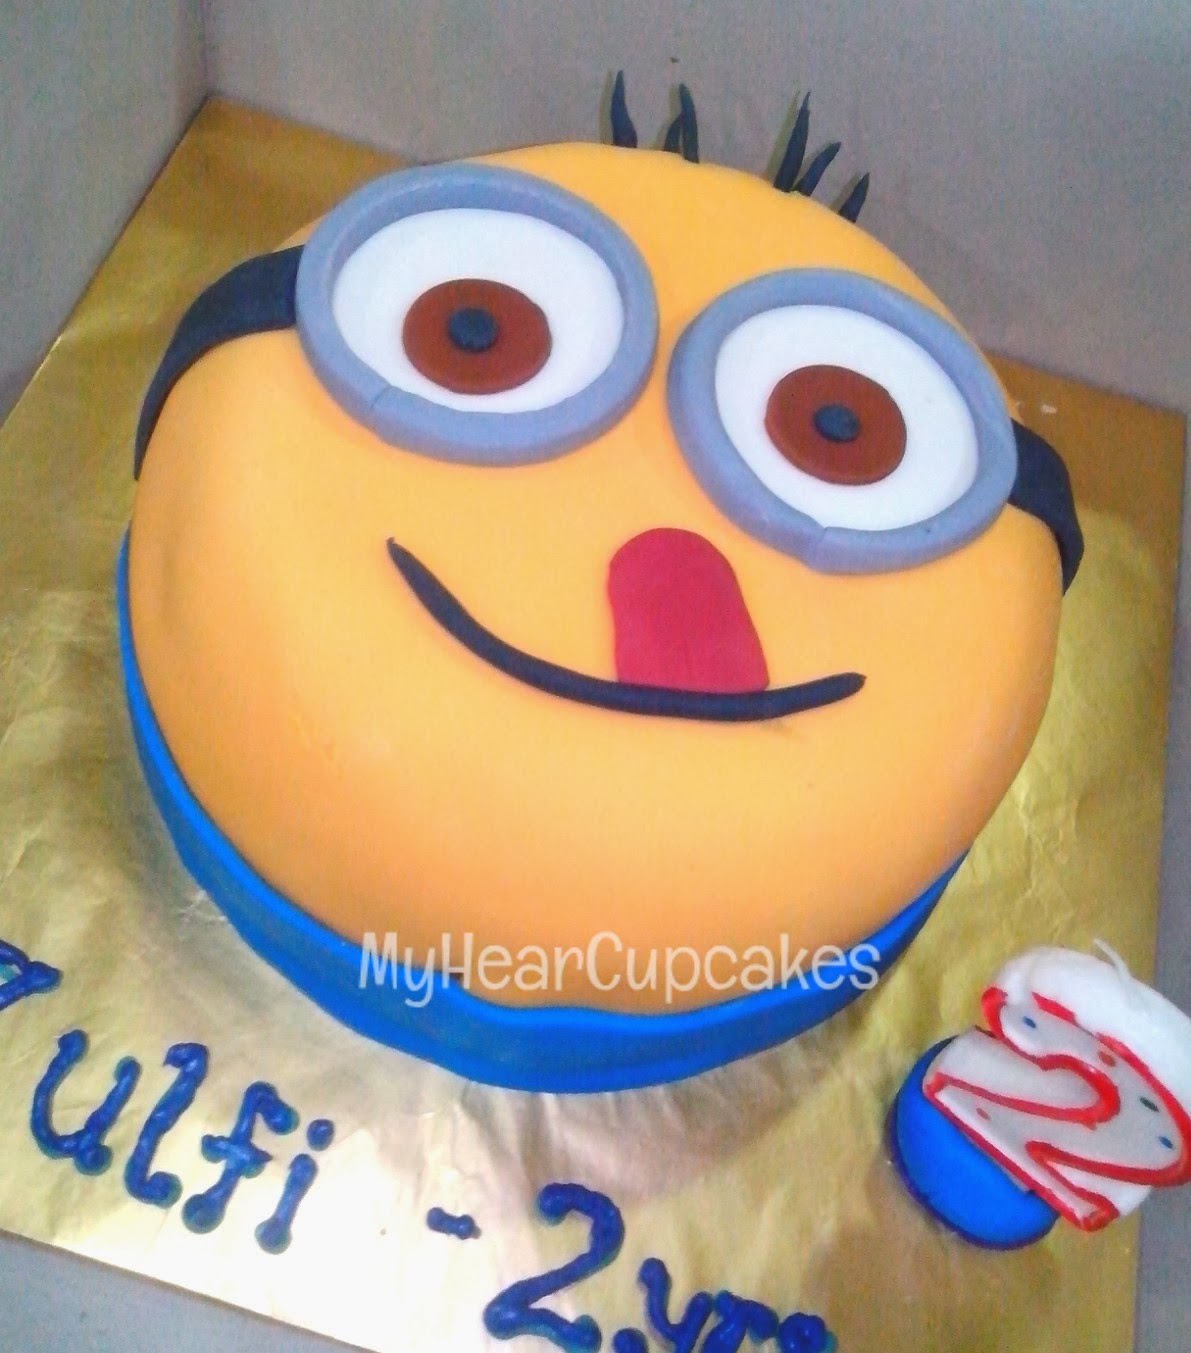 Cartoon Birthday Cake Images With Name : MyHeartCupcakes: Cartoon Character Cakes